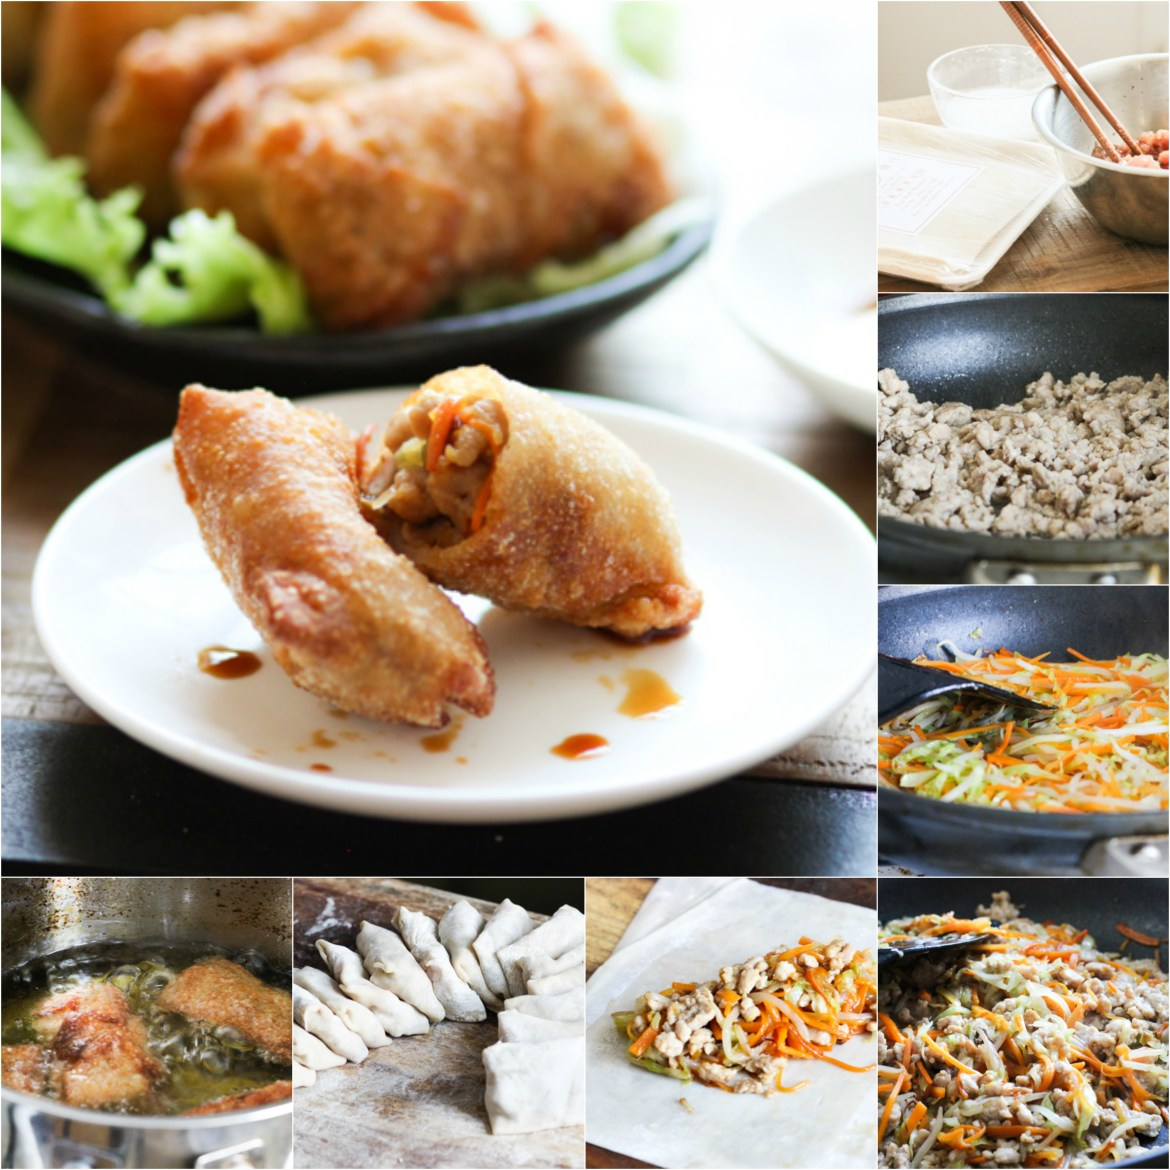 How to make home-made egg rolls